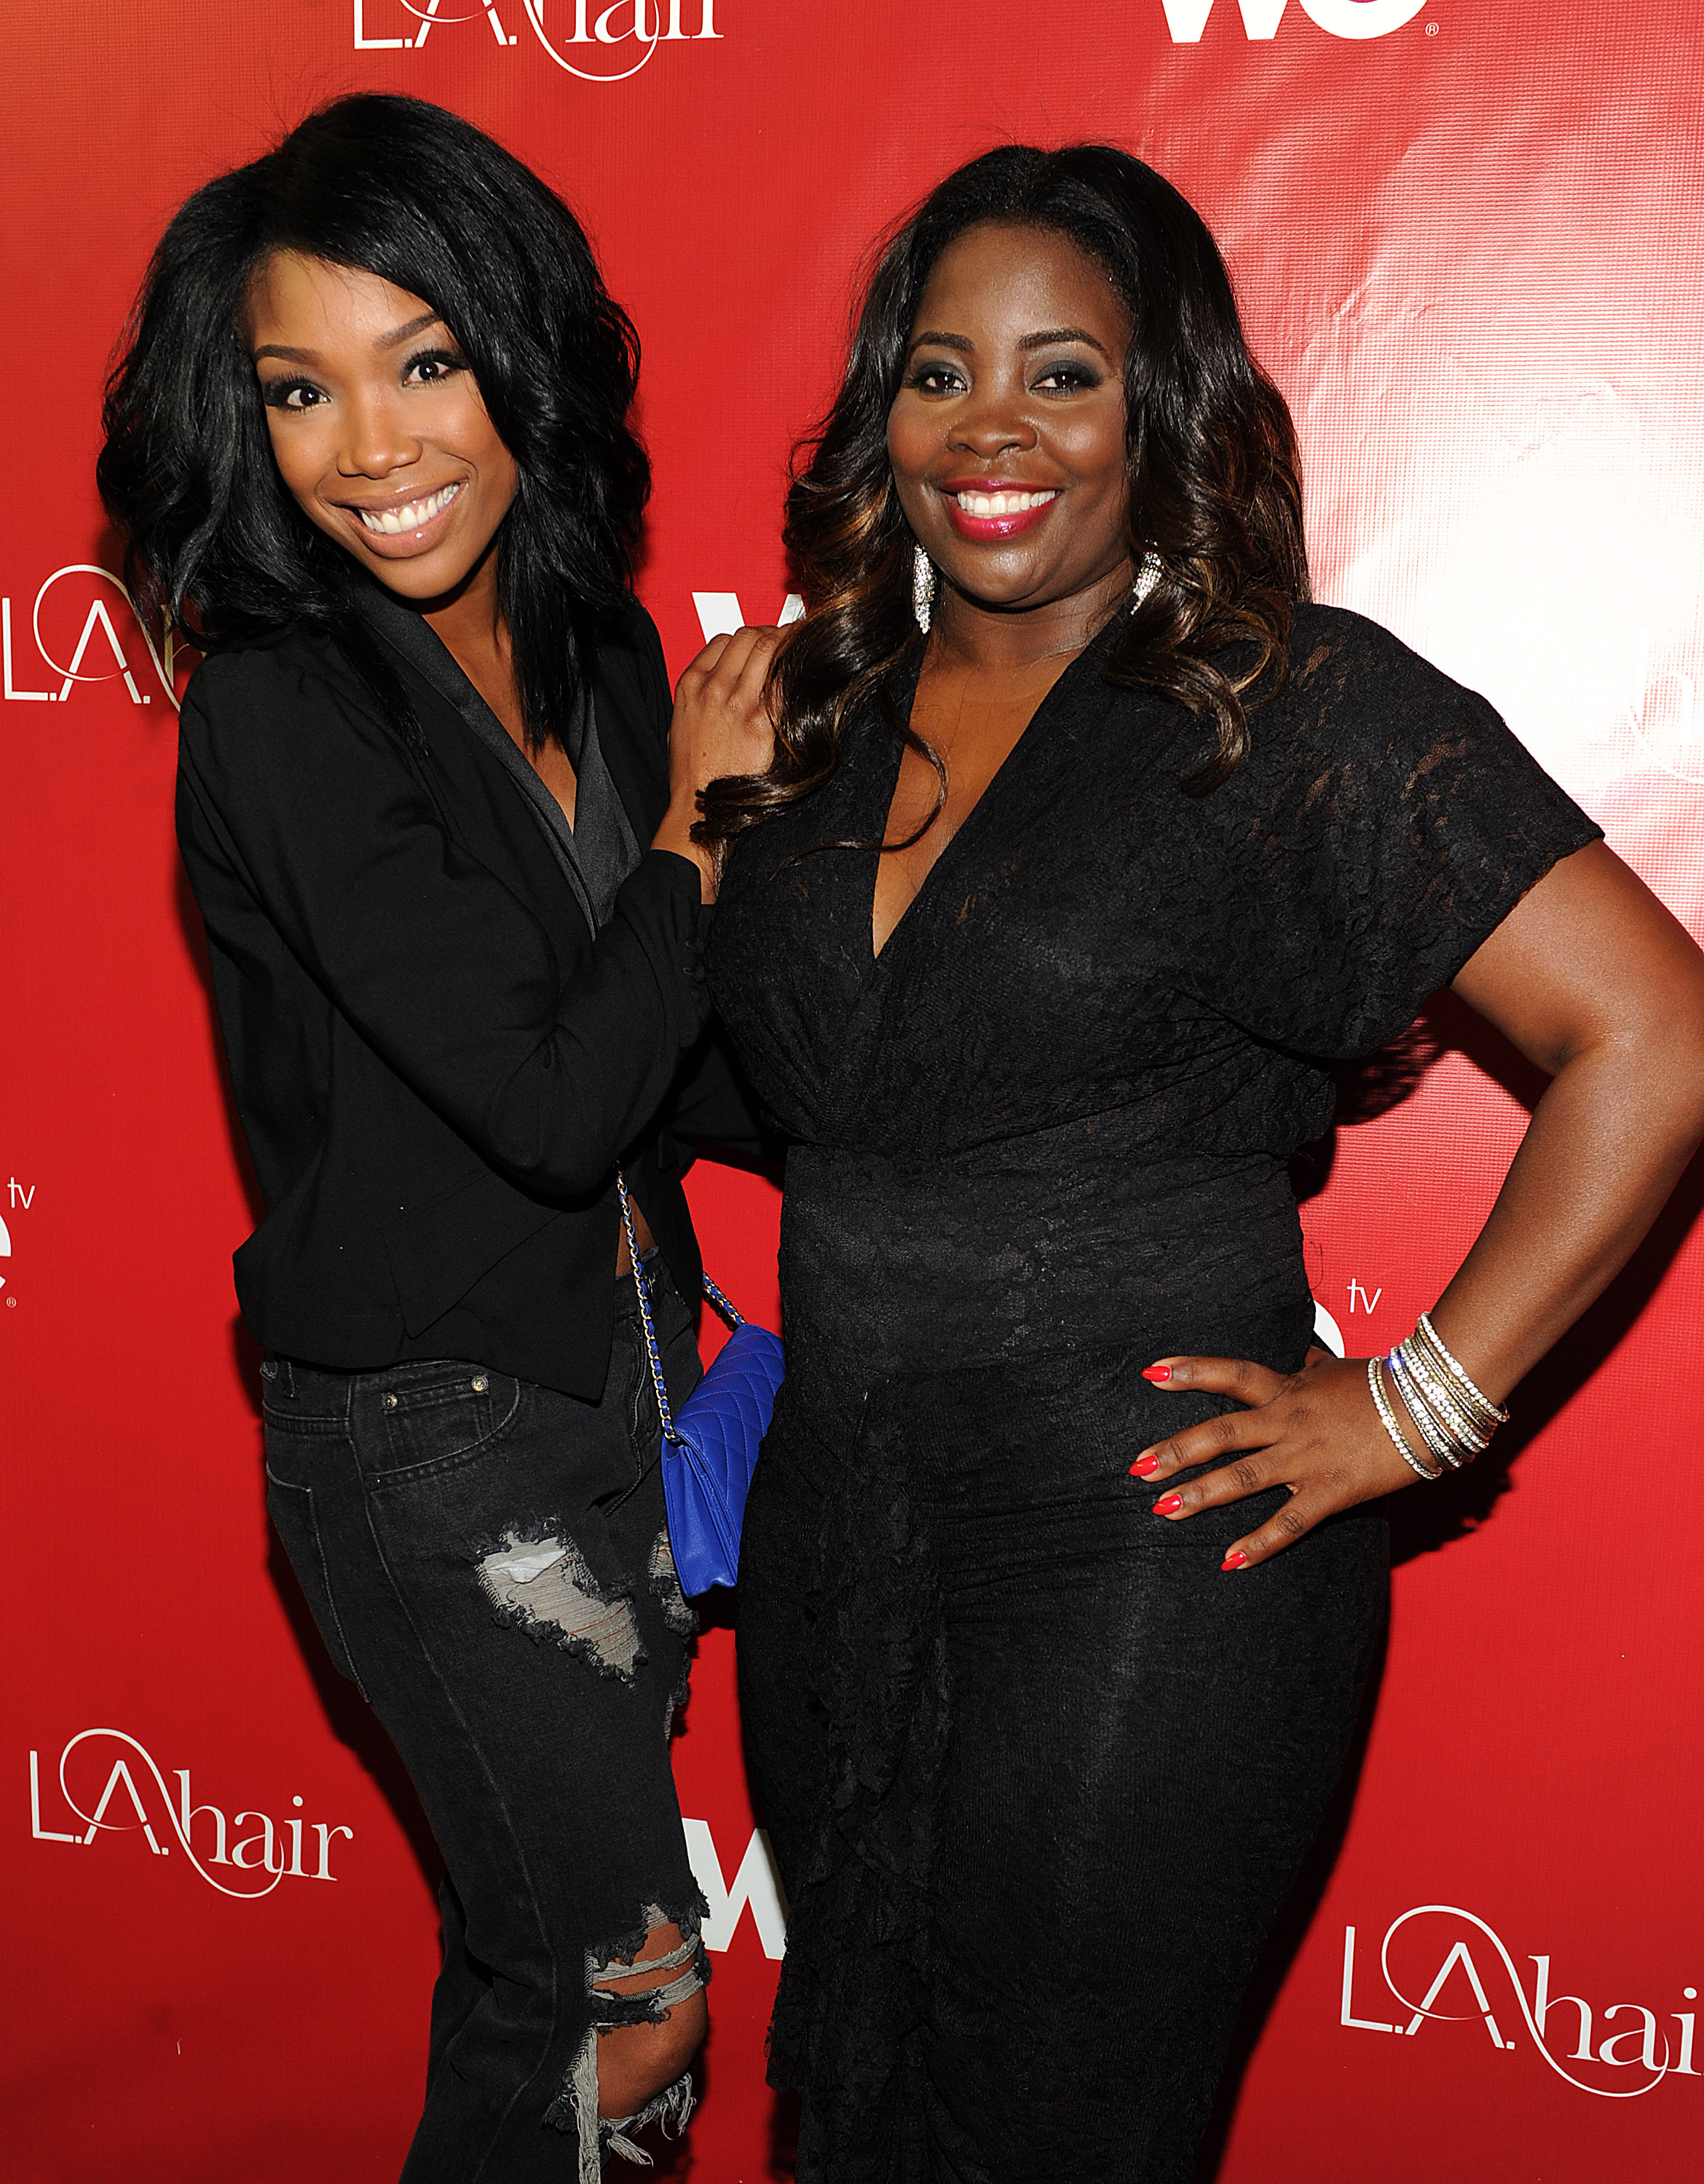 Brandy-and-Kim-Kimble-at-WE-tvs-LA-HAIR-Season-2-Premiere-Party-Freddy-O